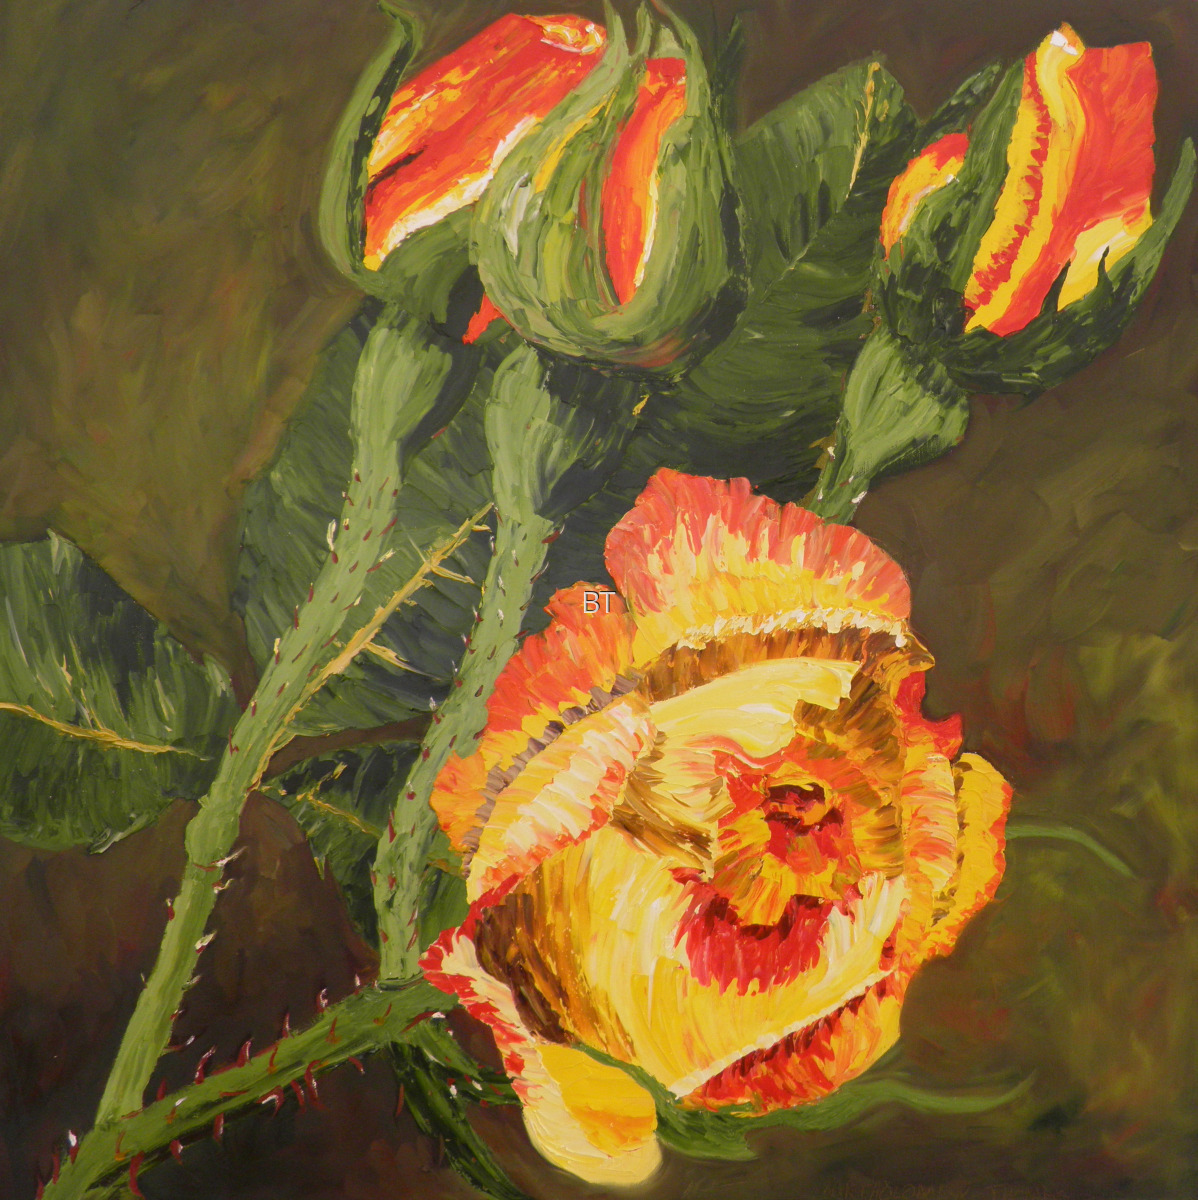 Oil on canvas of rose and stems covered in thorns in red and yellow and green (large view)